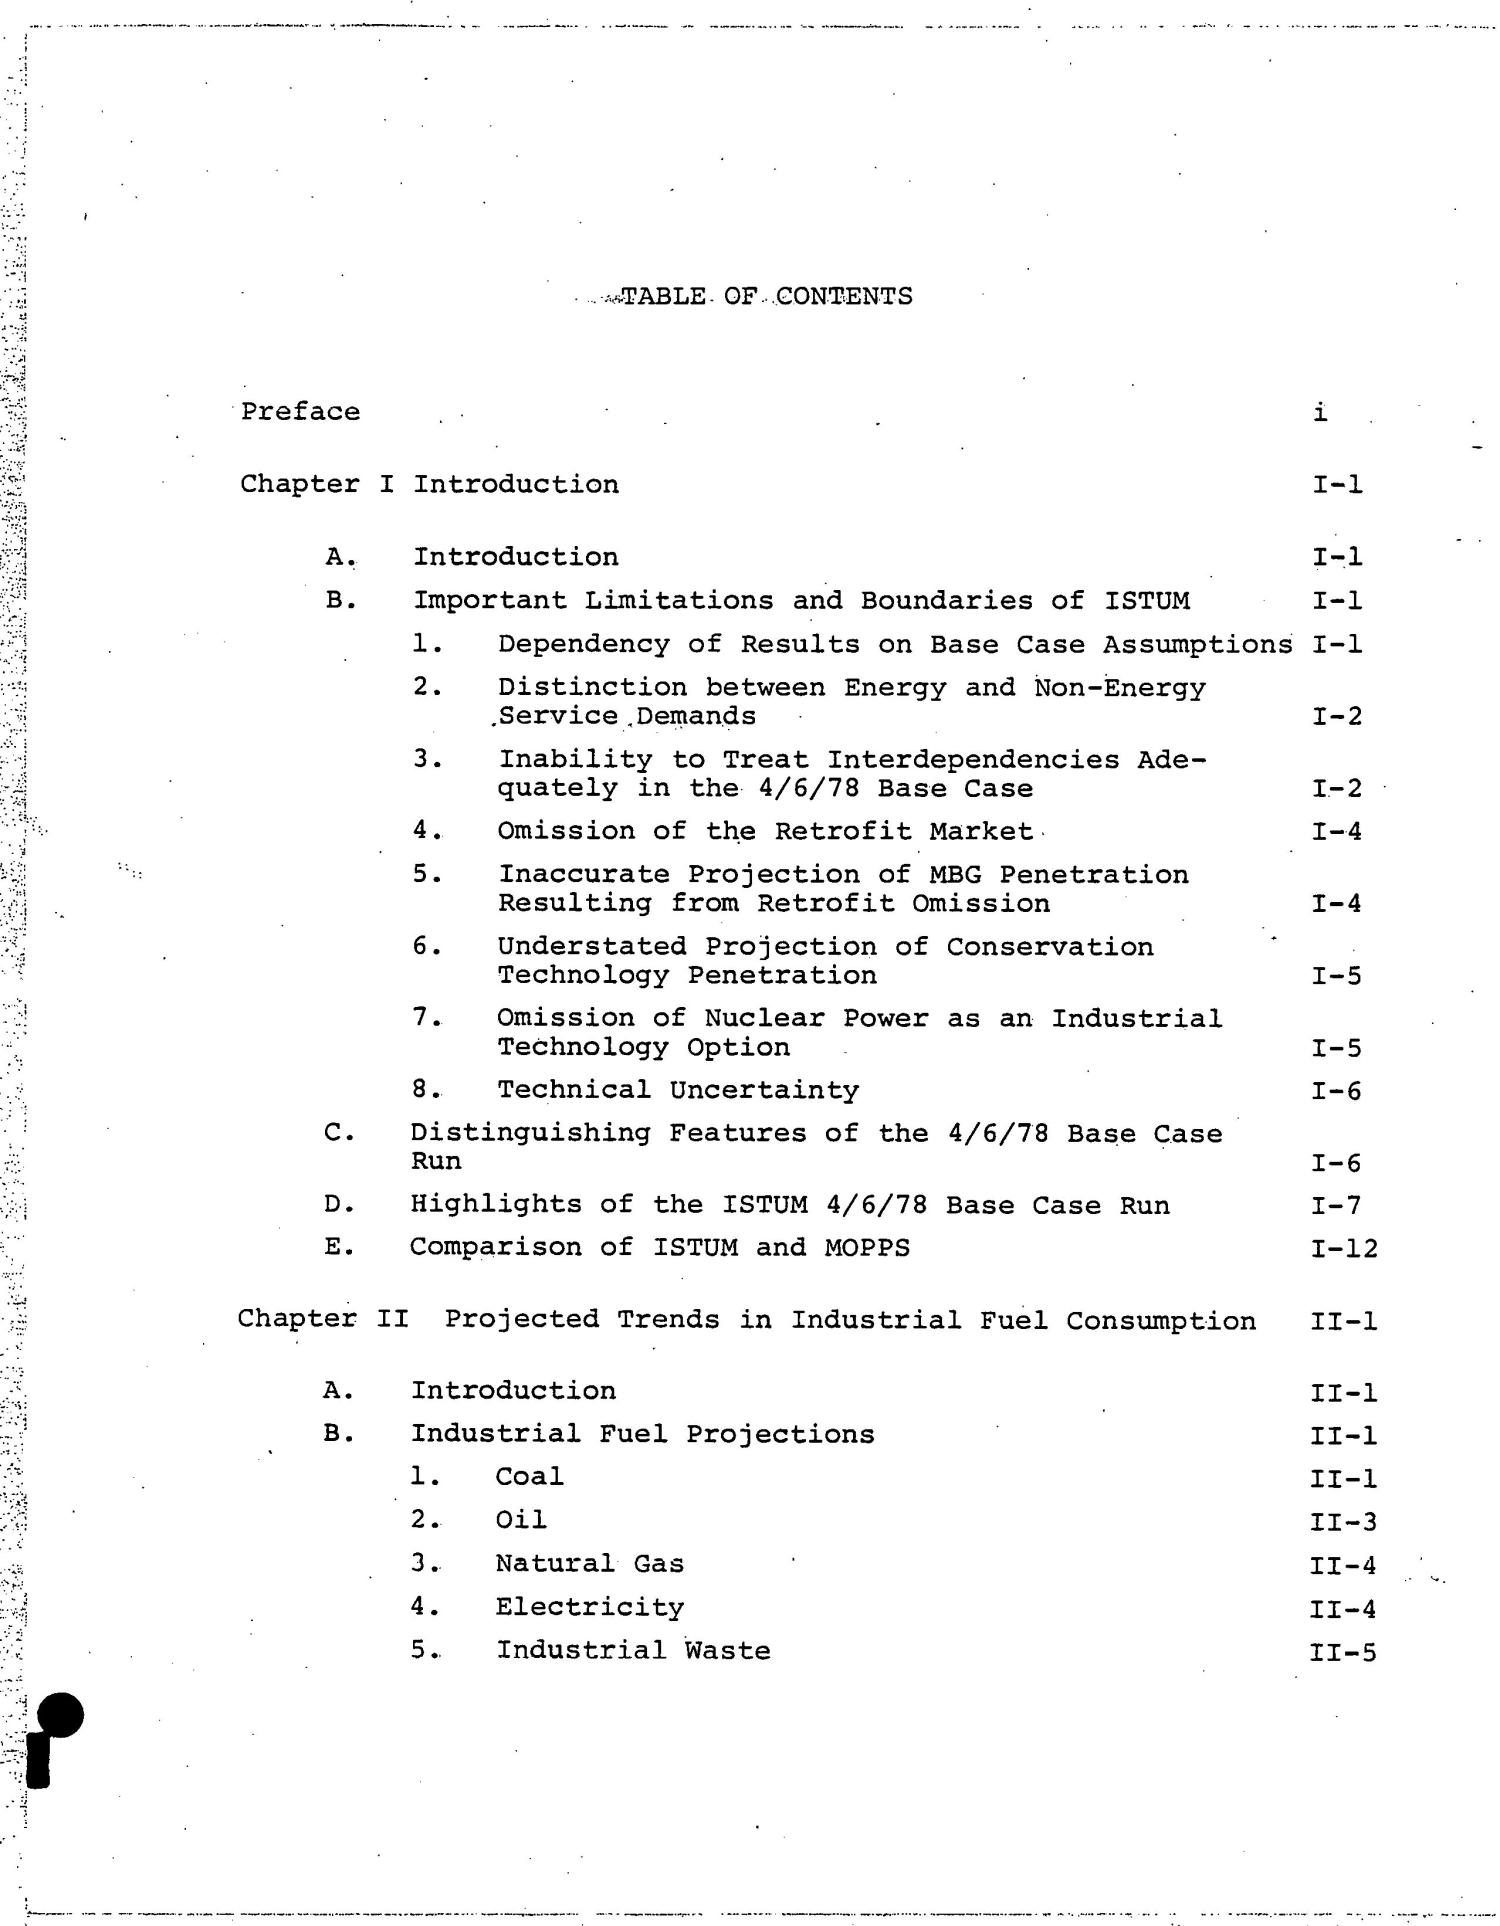 Industrial Sector Technology Use Model (ISTUM): industrial energy use in the United States, 1974-2000. Volume 2. Results                                                                                                      [Sequence #]: 7 of 119